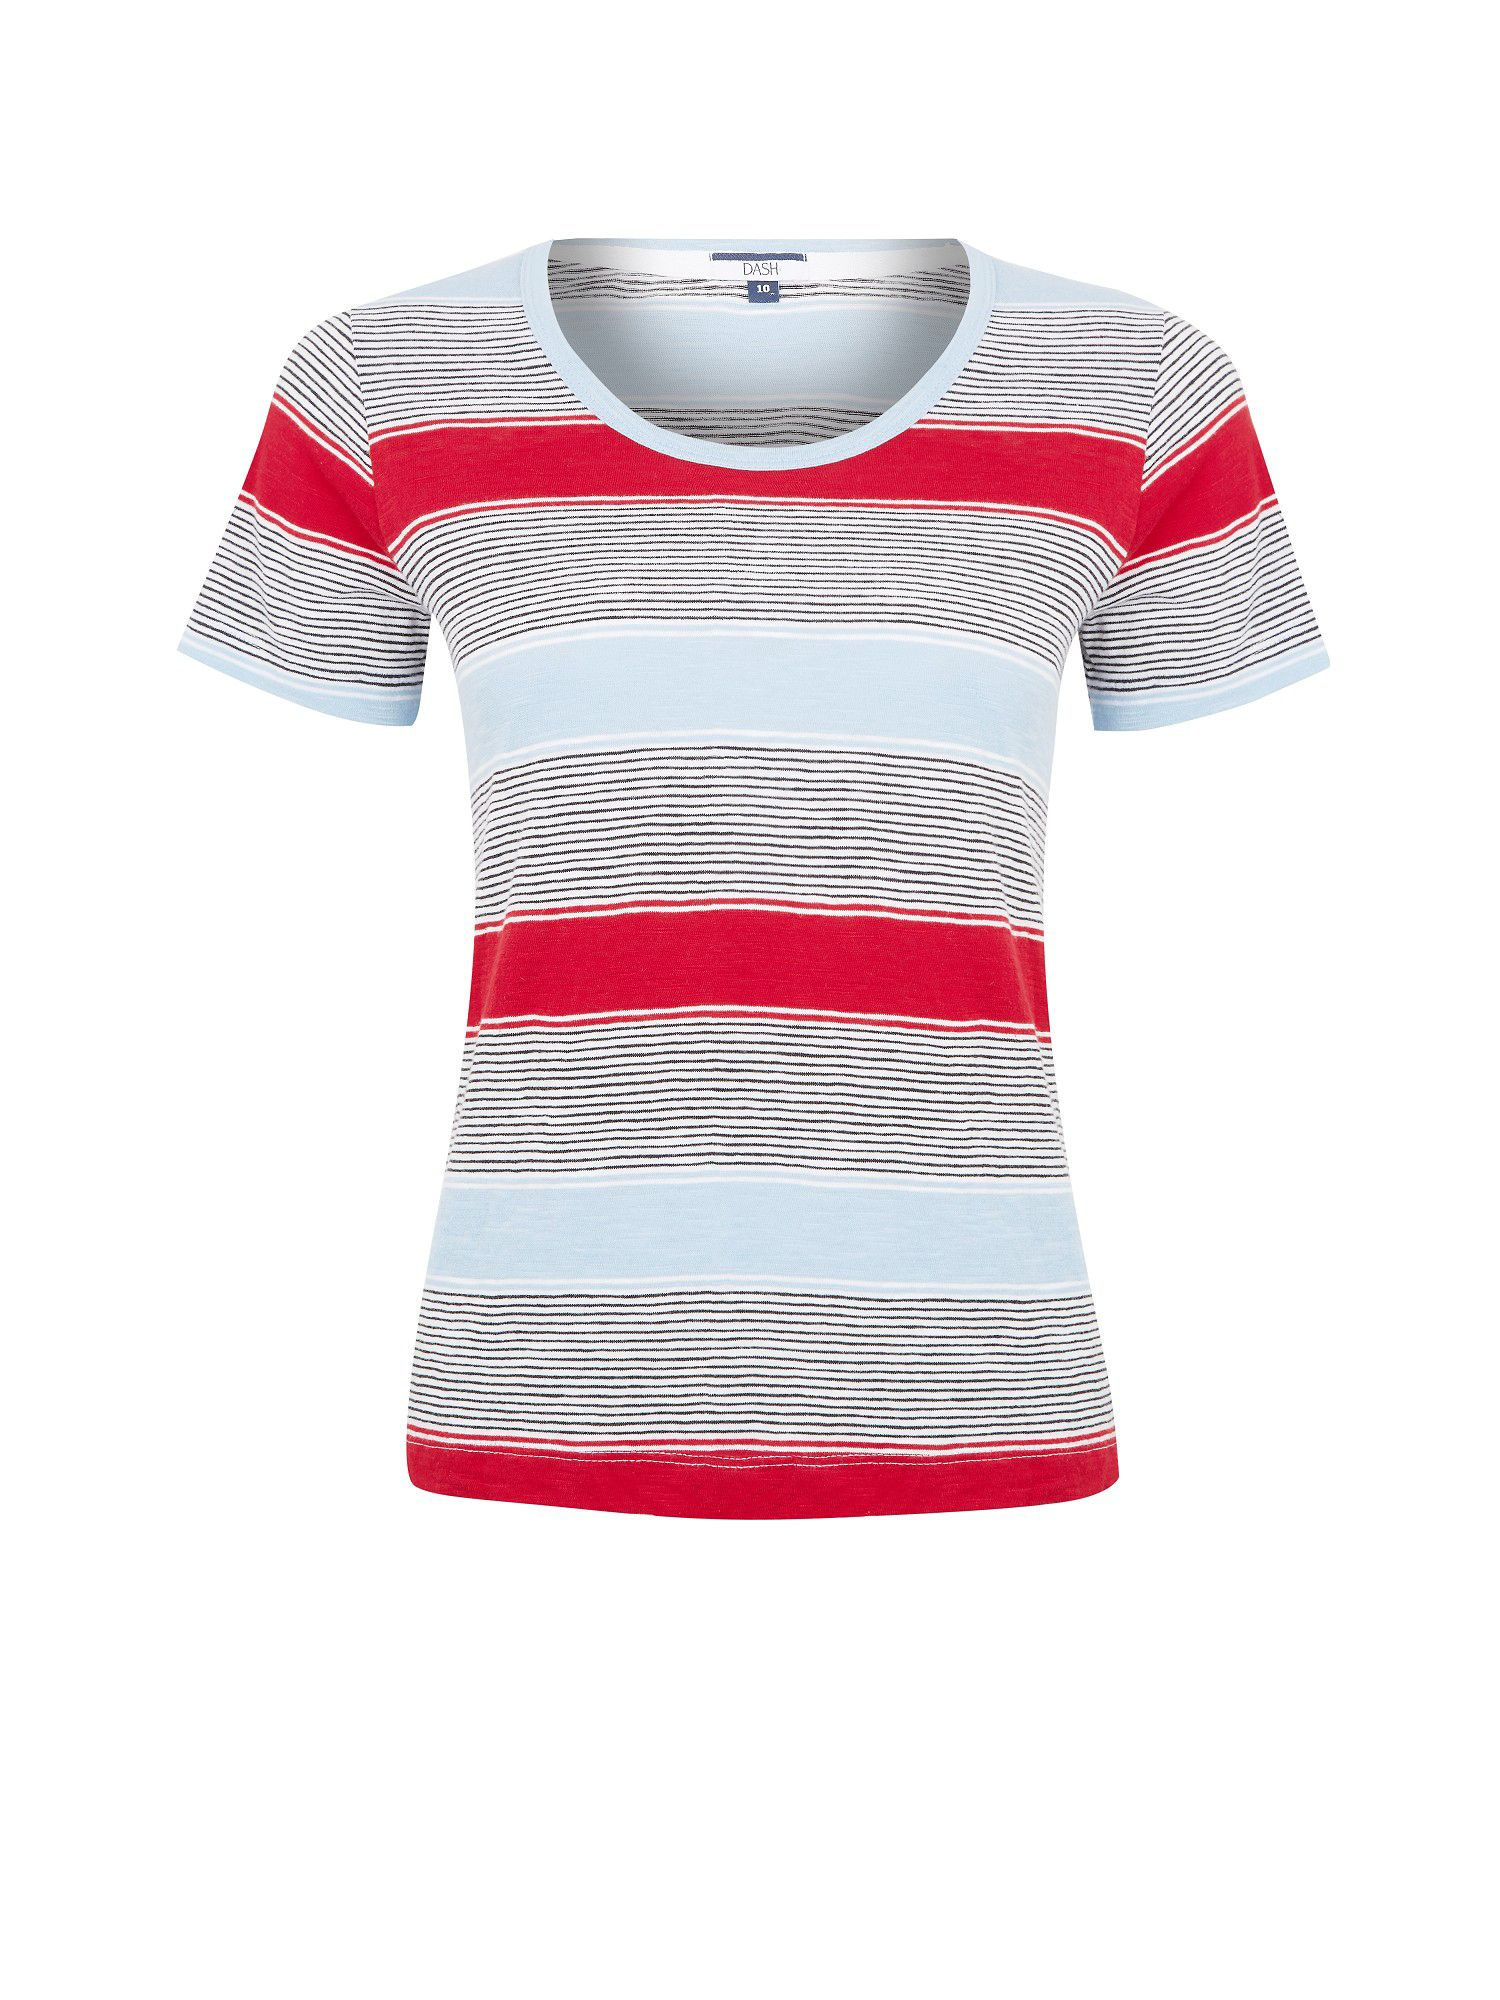 Multi stripe scoop tee